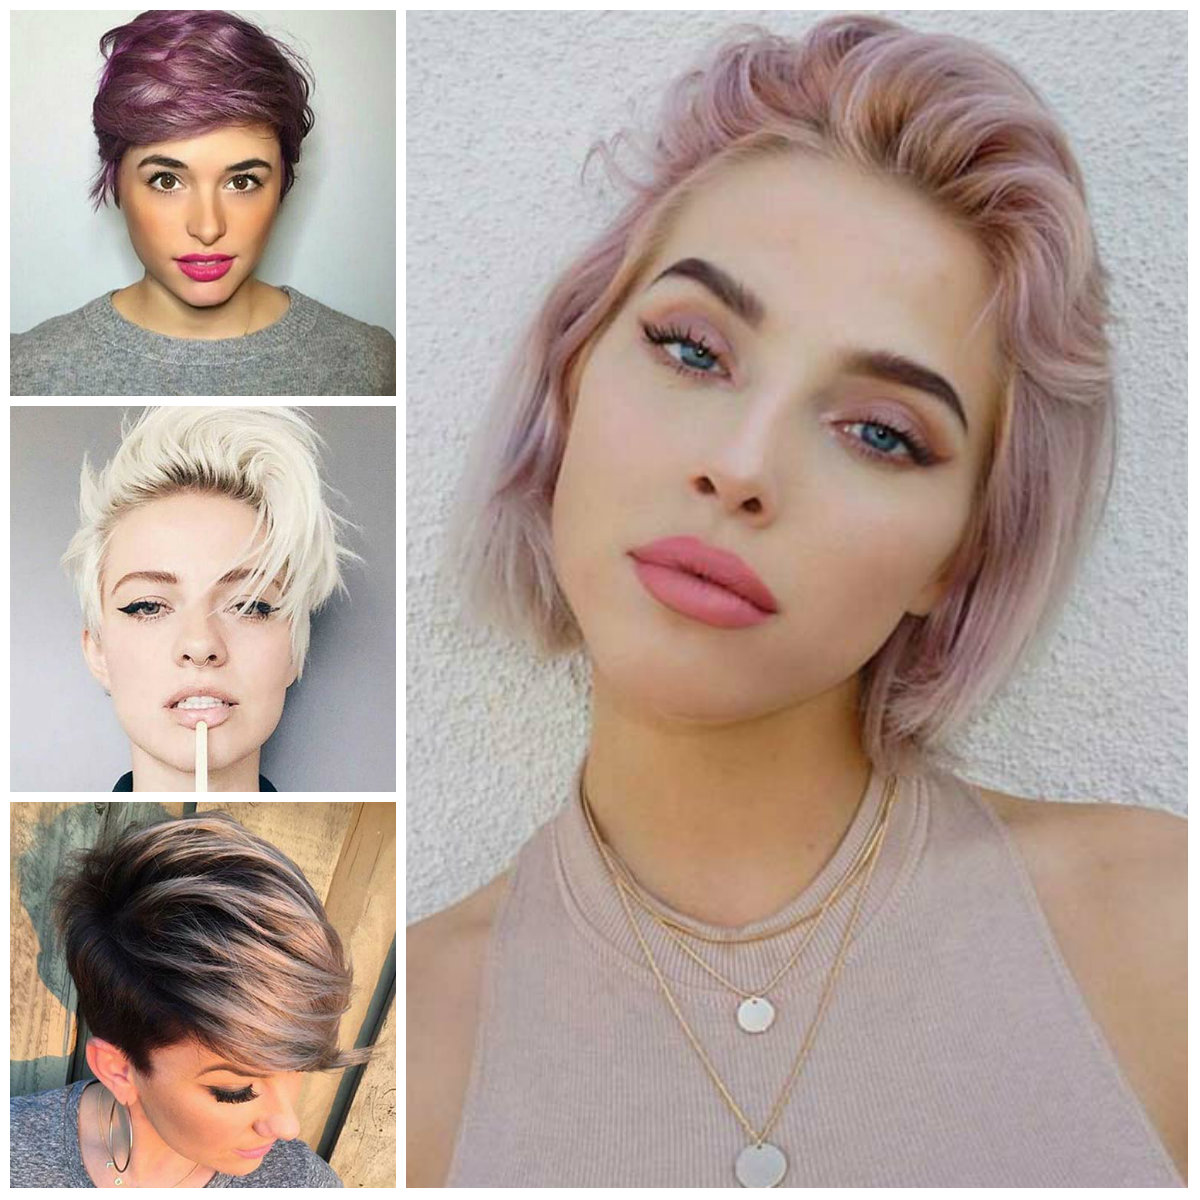 women's short hairstyles for 2017 | 2019 haircuts, hairstyles and